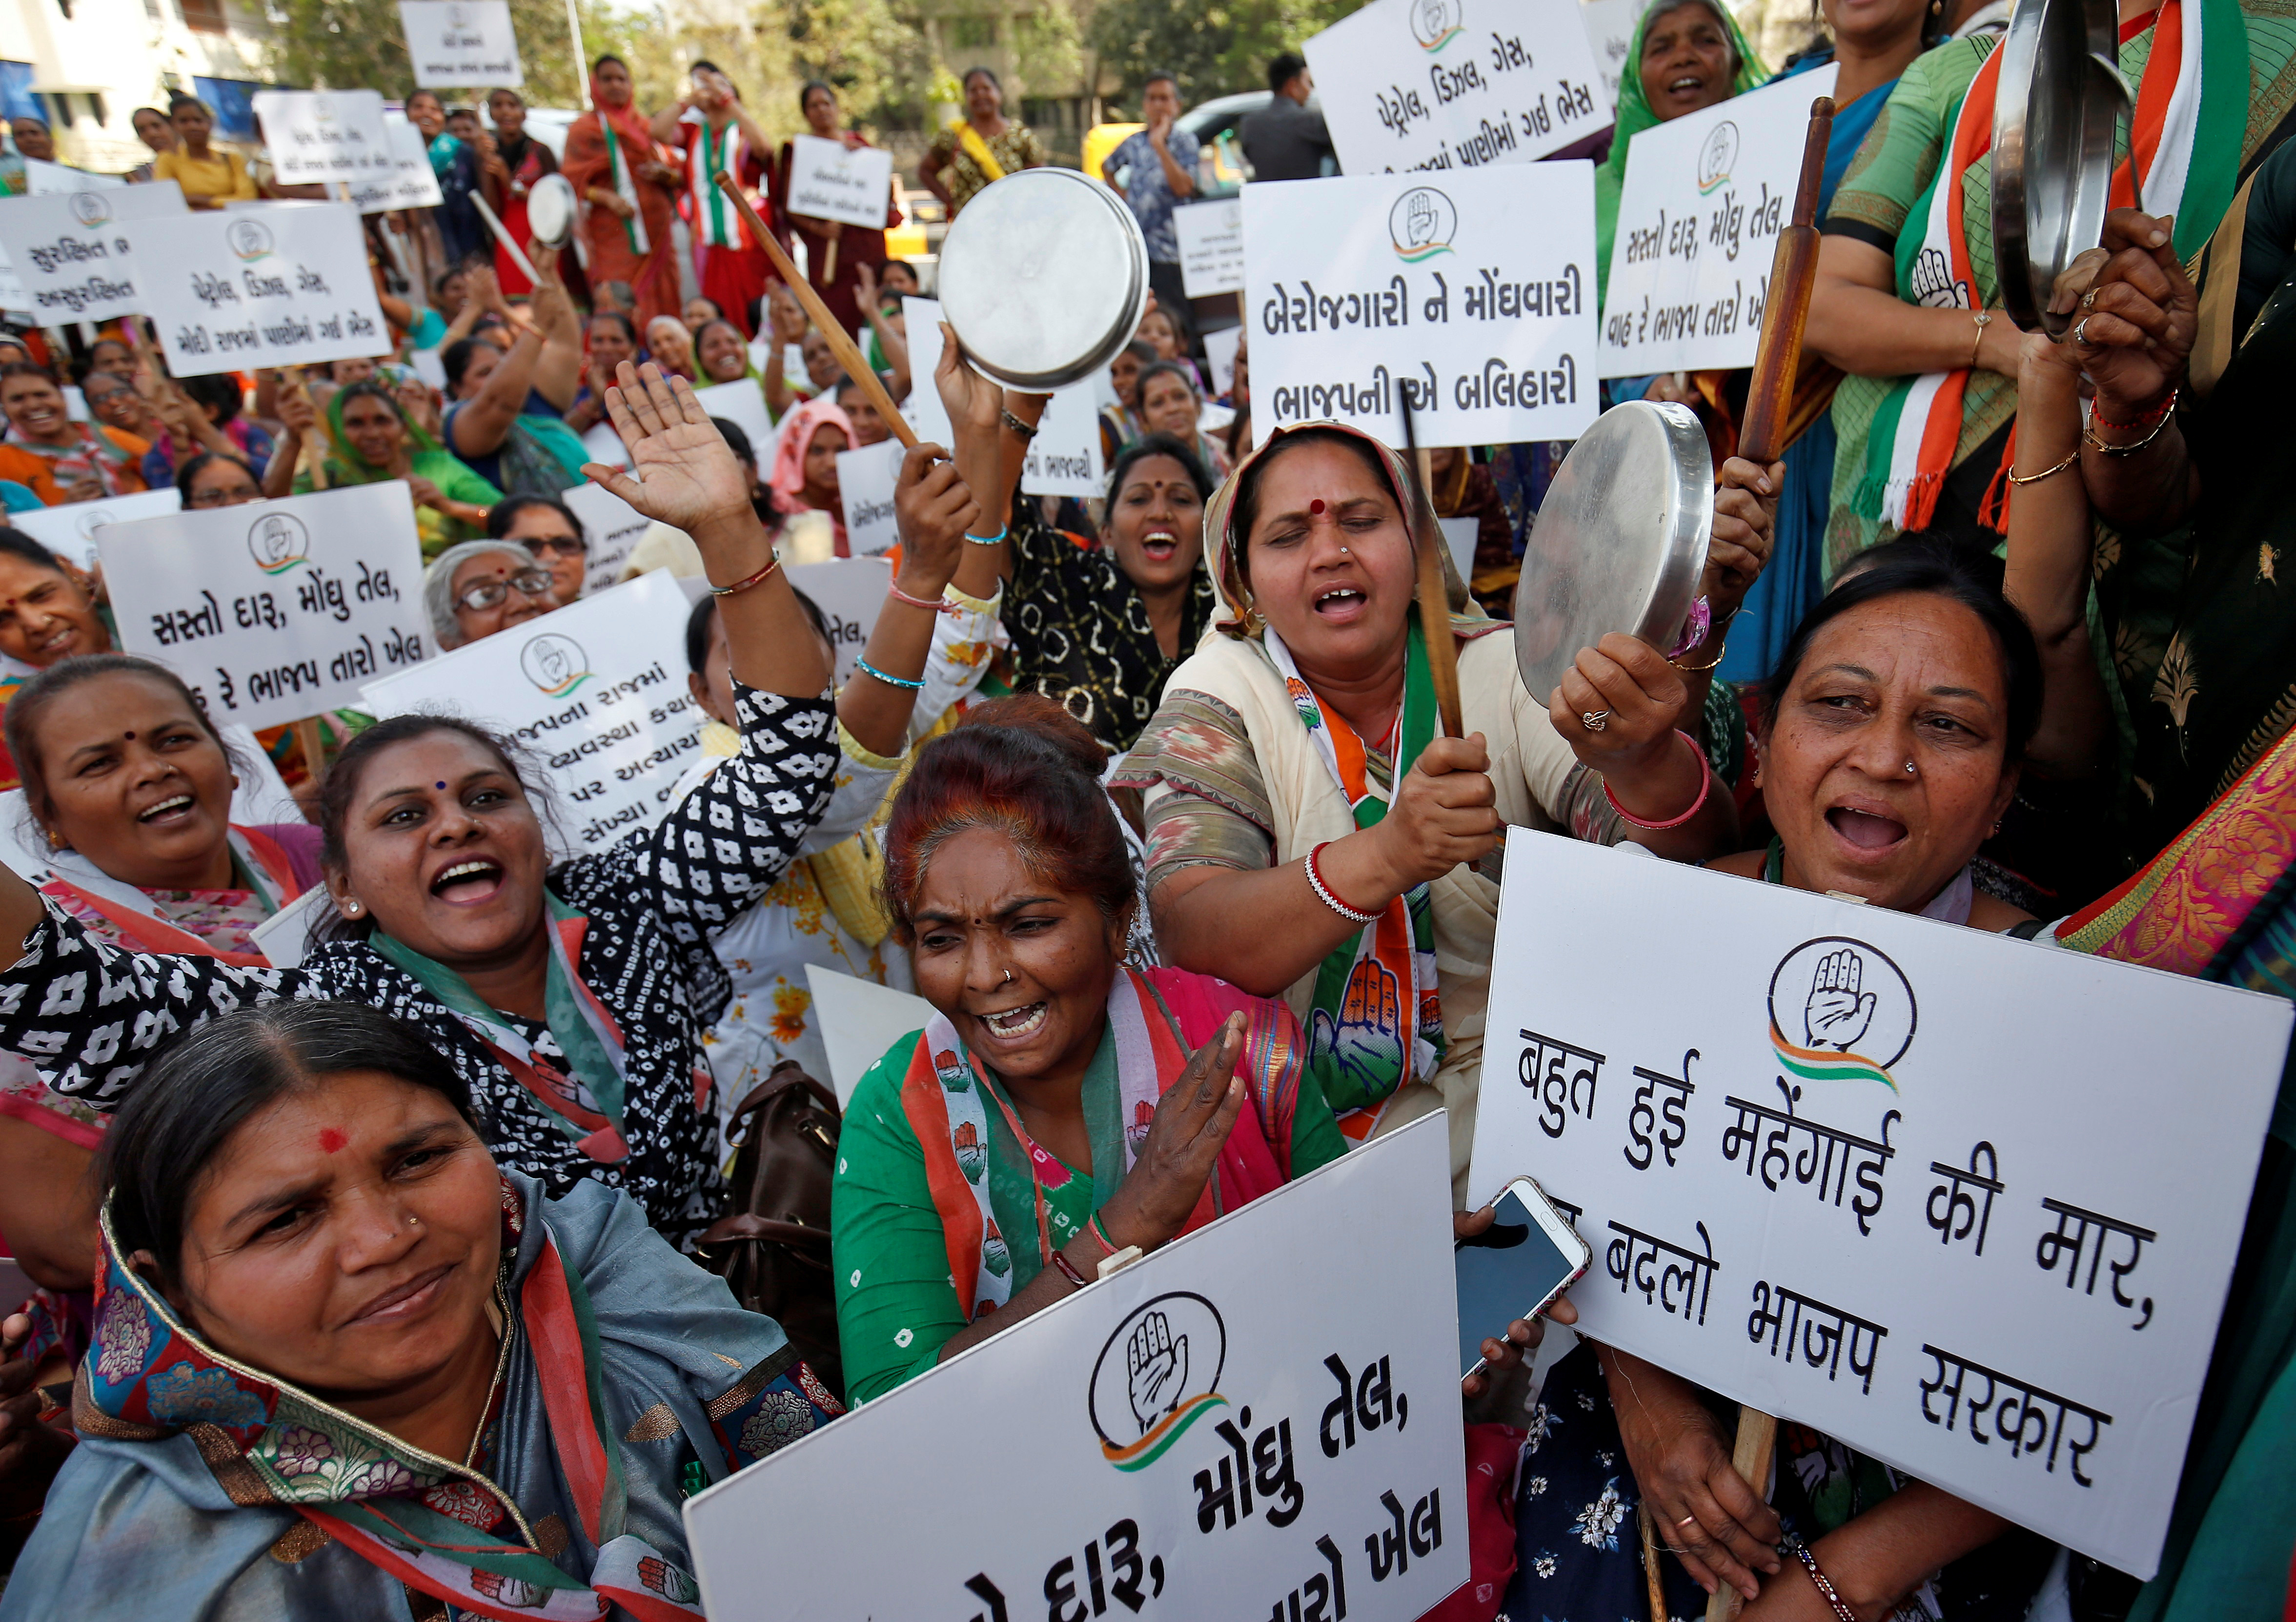 The protests over India's Citizenship Amendment Act